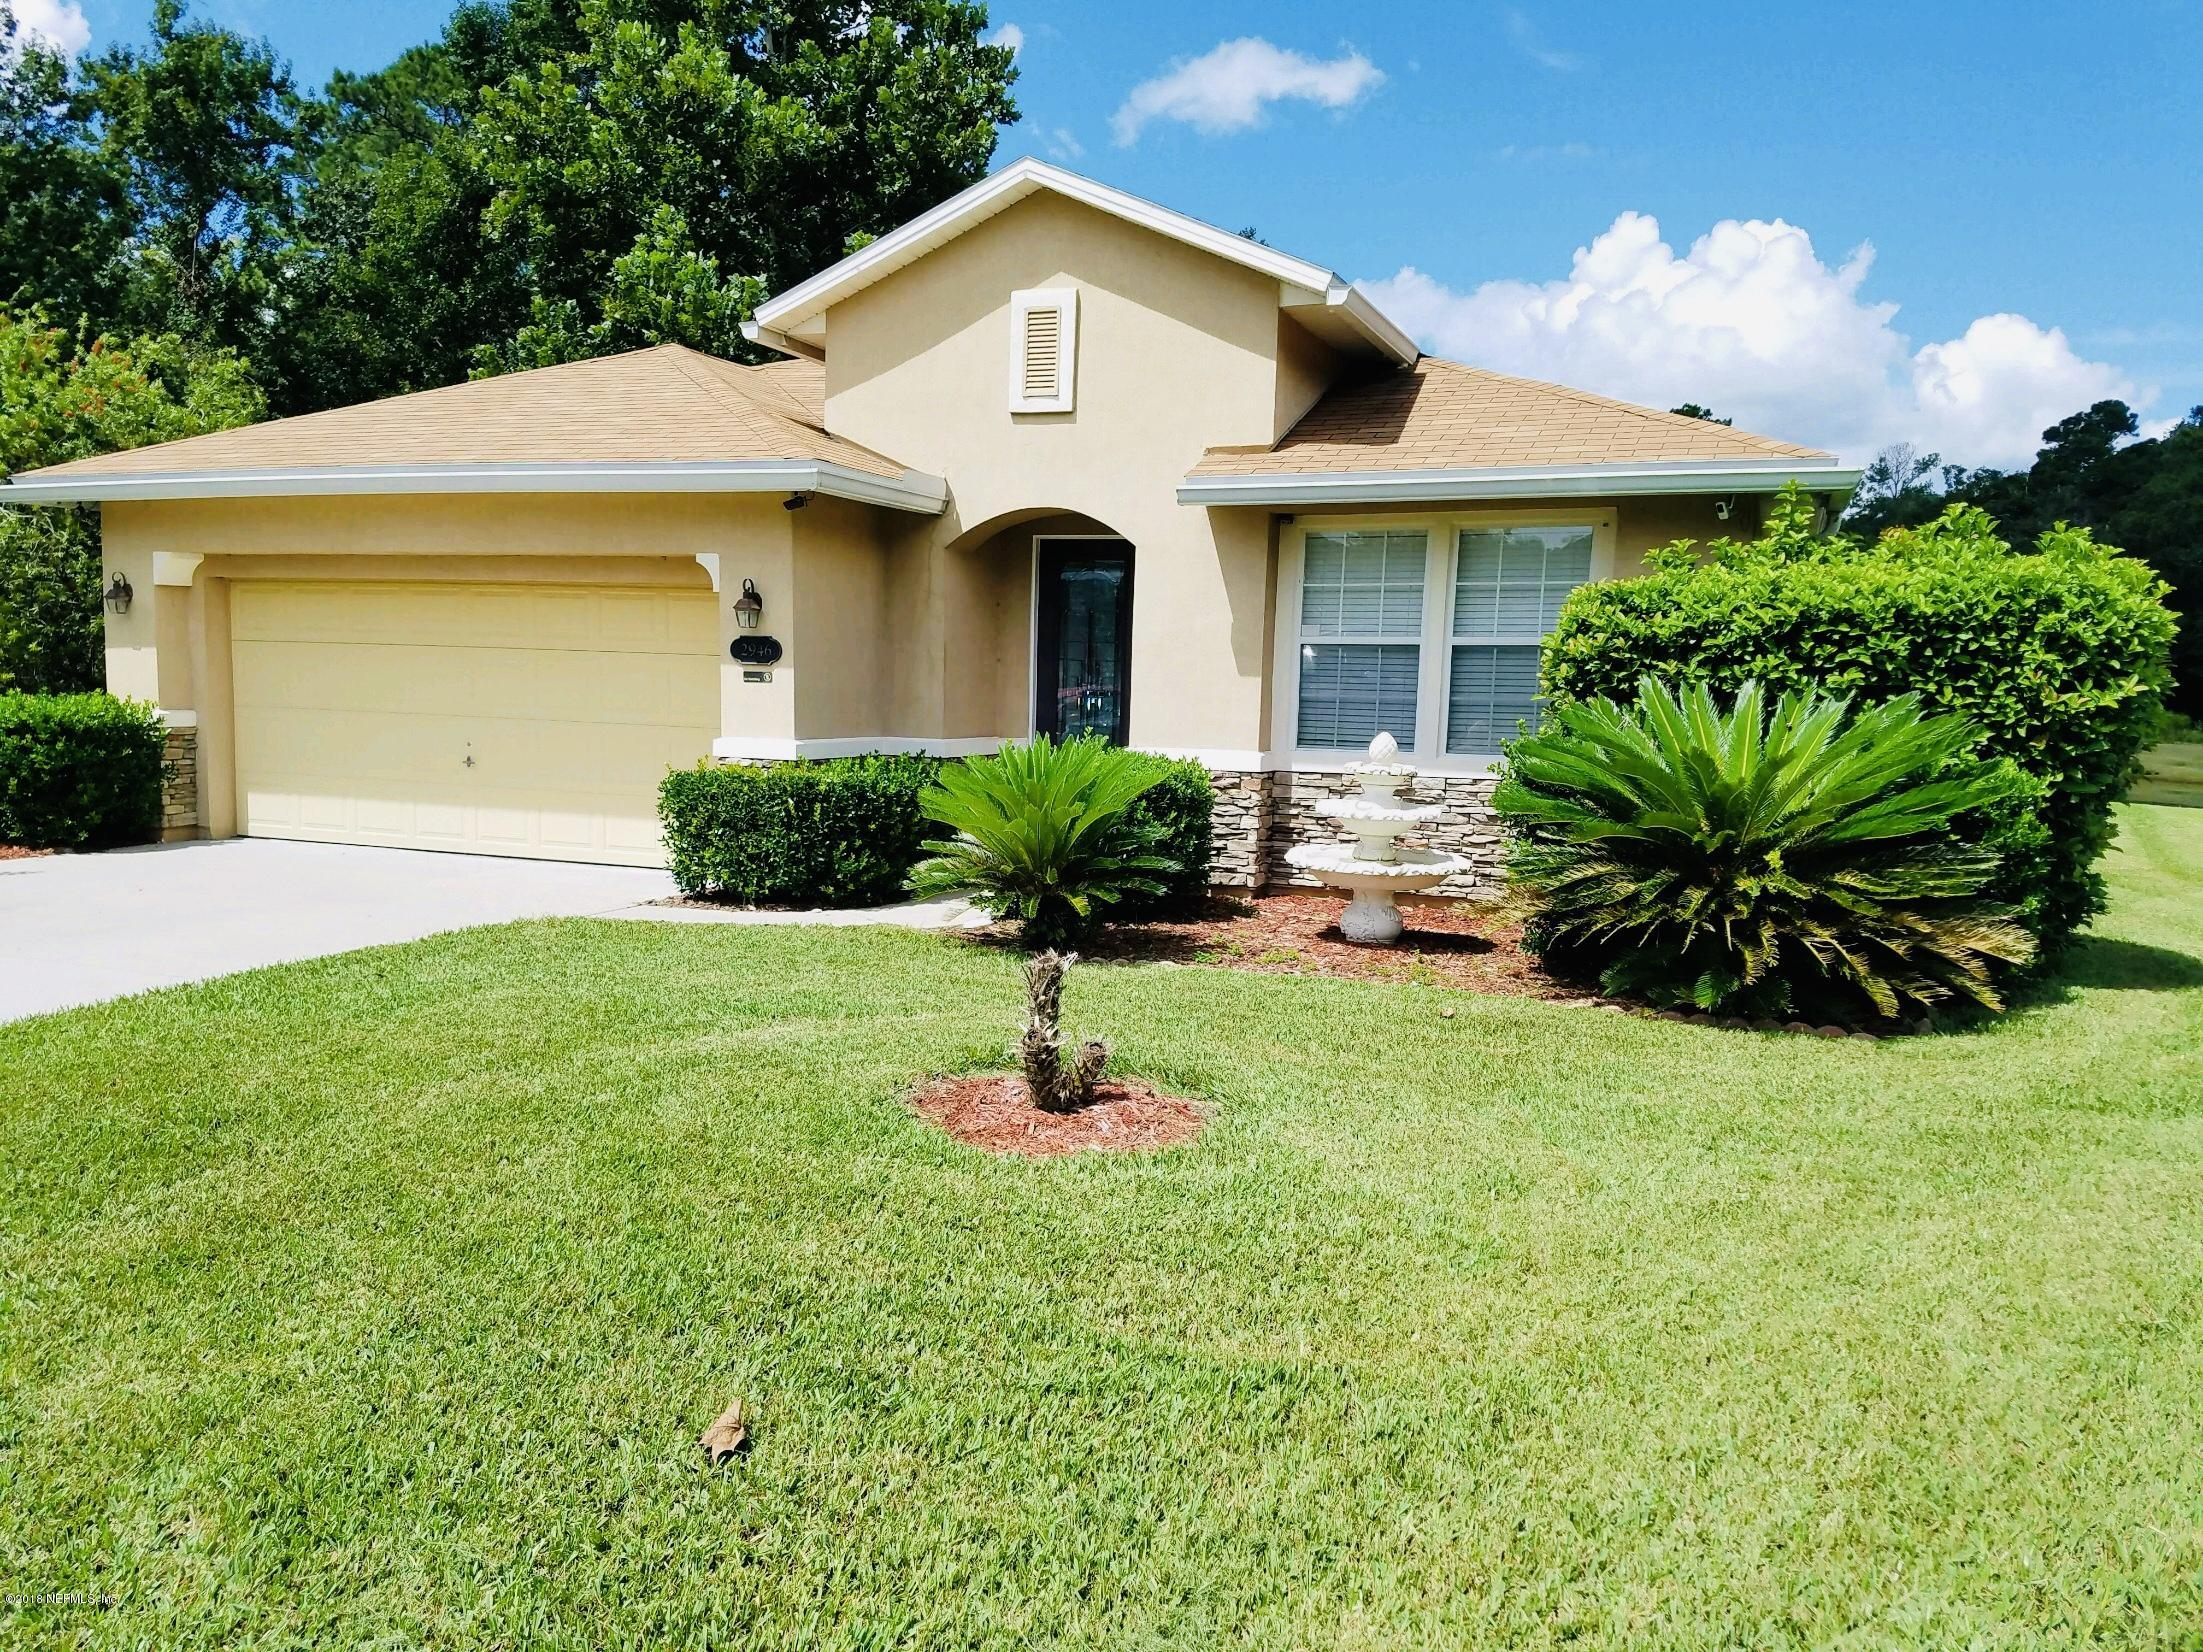 2946 BENT BOW, MIDDLEBURG, FLORIDA 32068, 3 Bedrooms Bedrooms, ,2 BathroomsBathrooms,Residential - single family,For sale,BENT BOW,964877